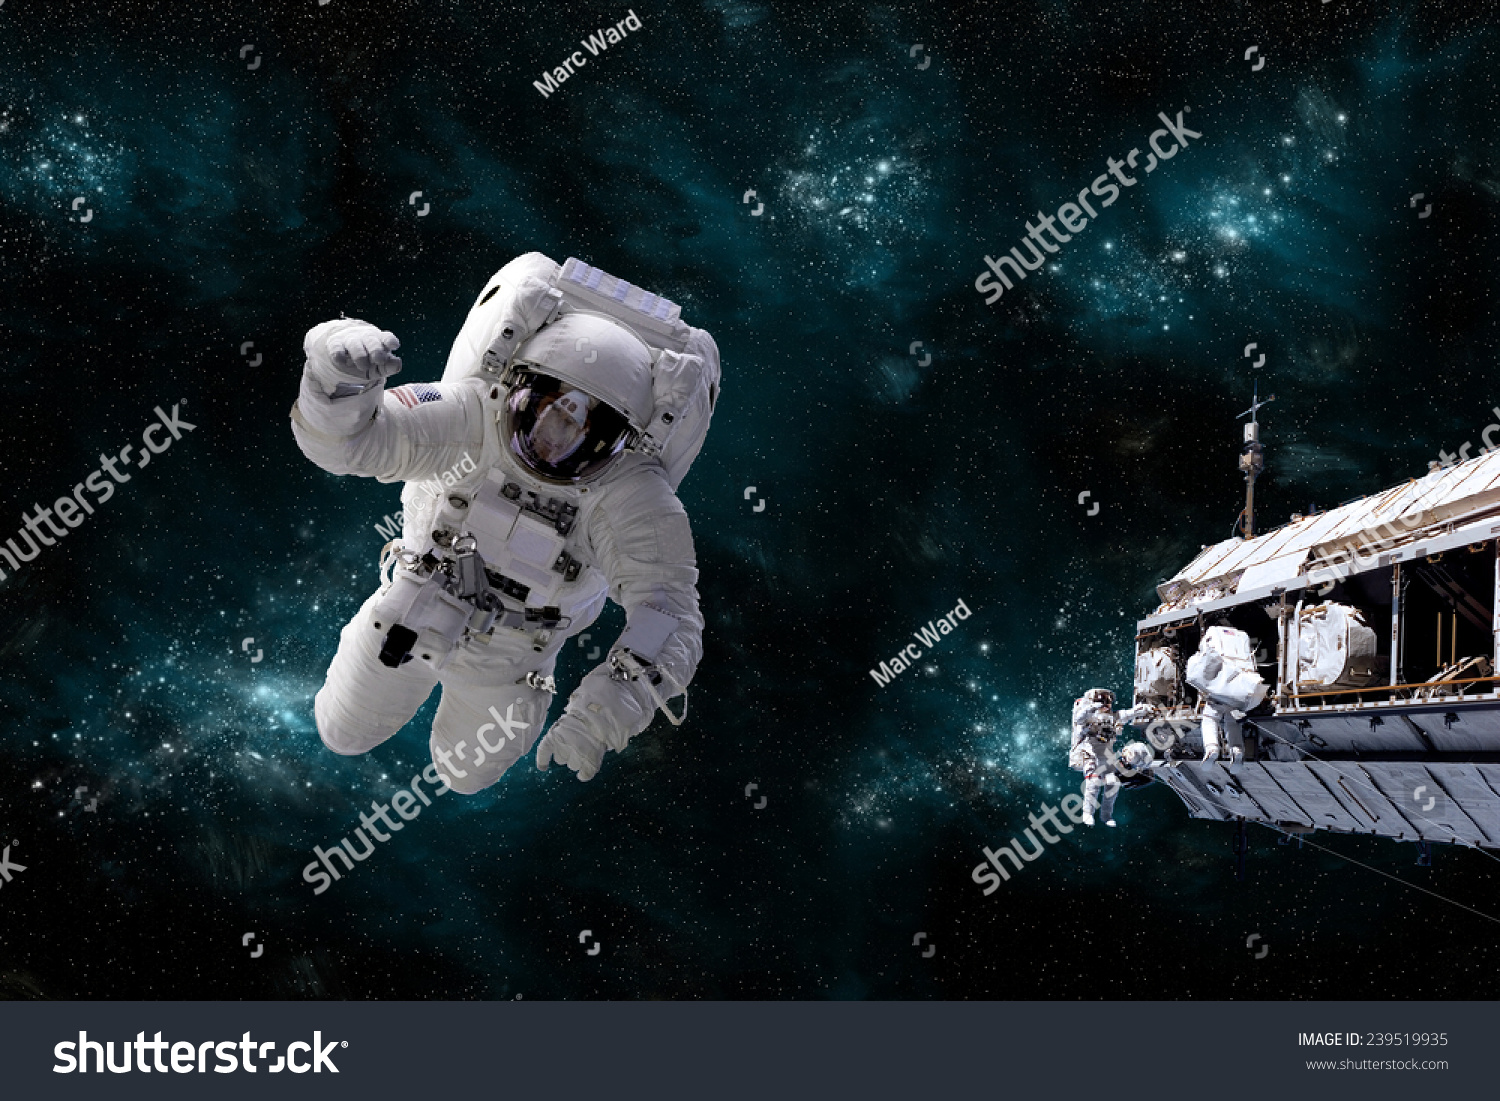 astronaut working on space station - photo #45